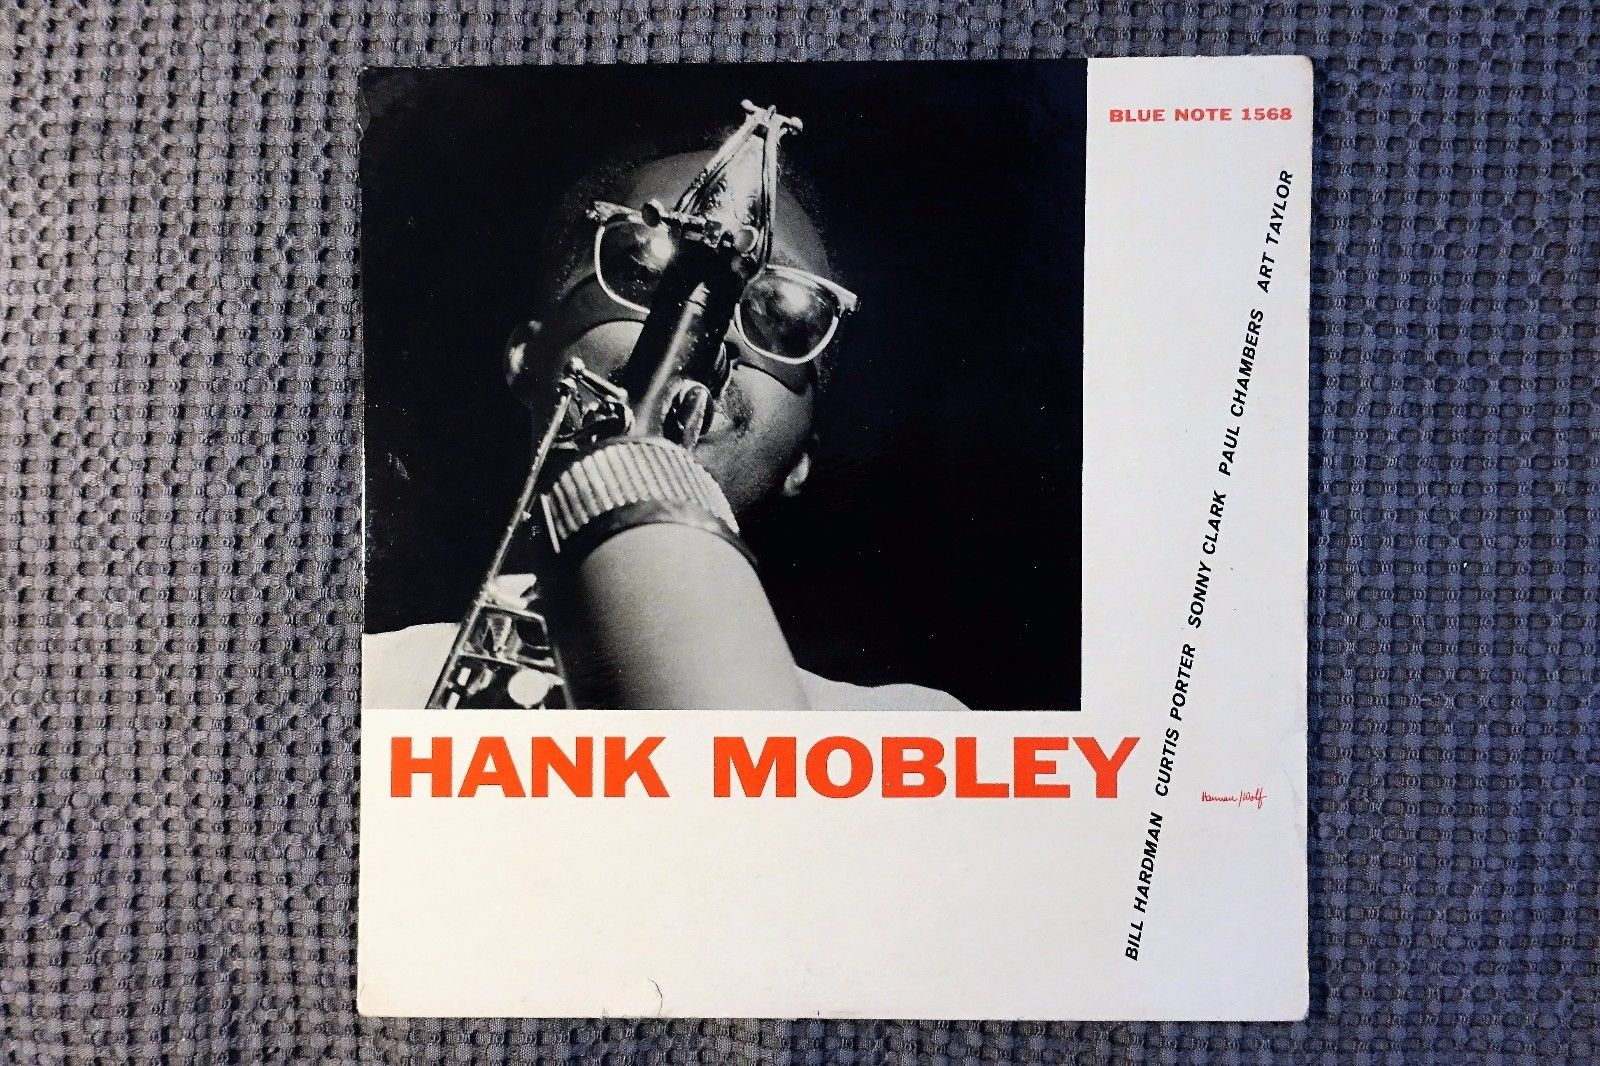 HANK MOBLEY ' SELF TITLE'   1ST PRESS.    BLP 1568.    'NYC' ON BOTH SIDE